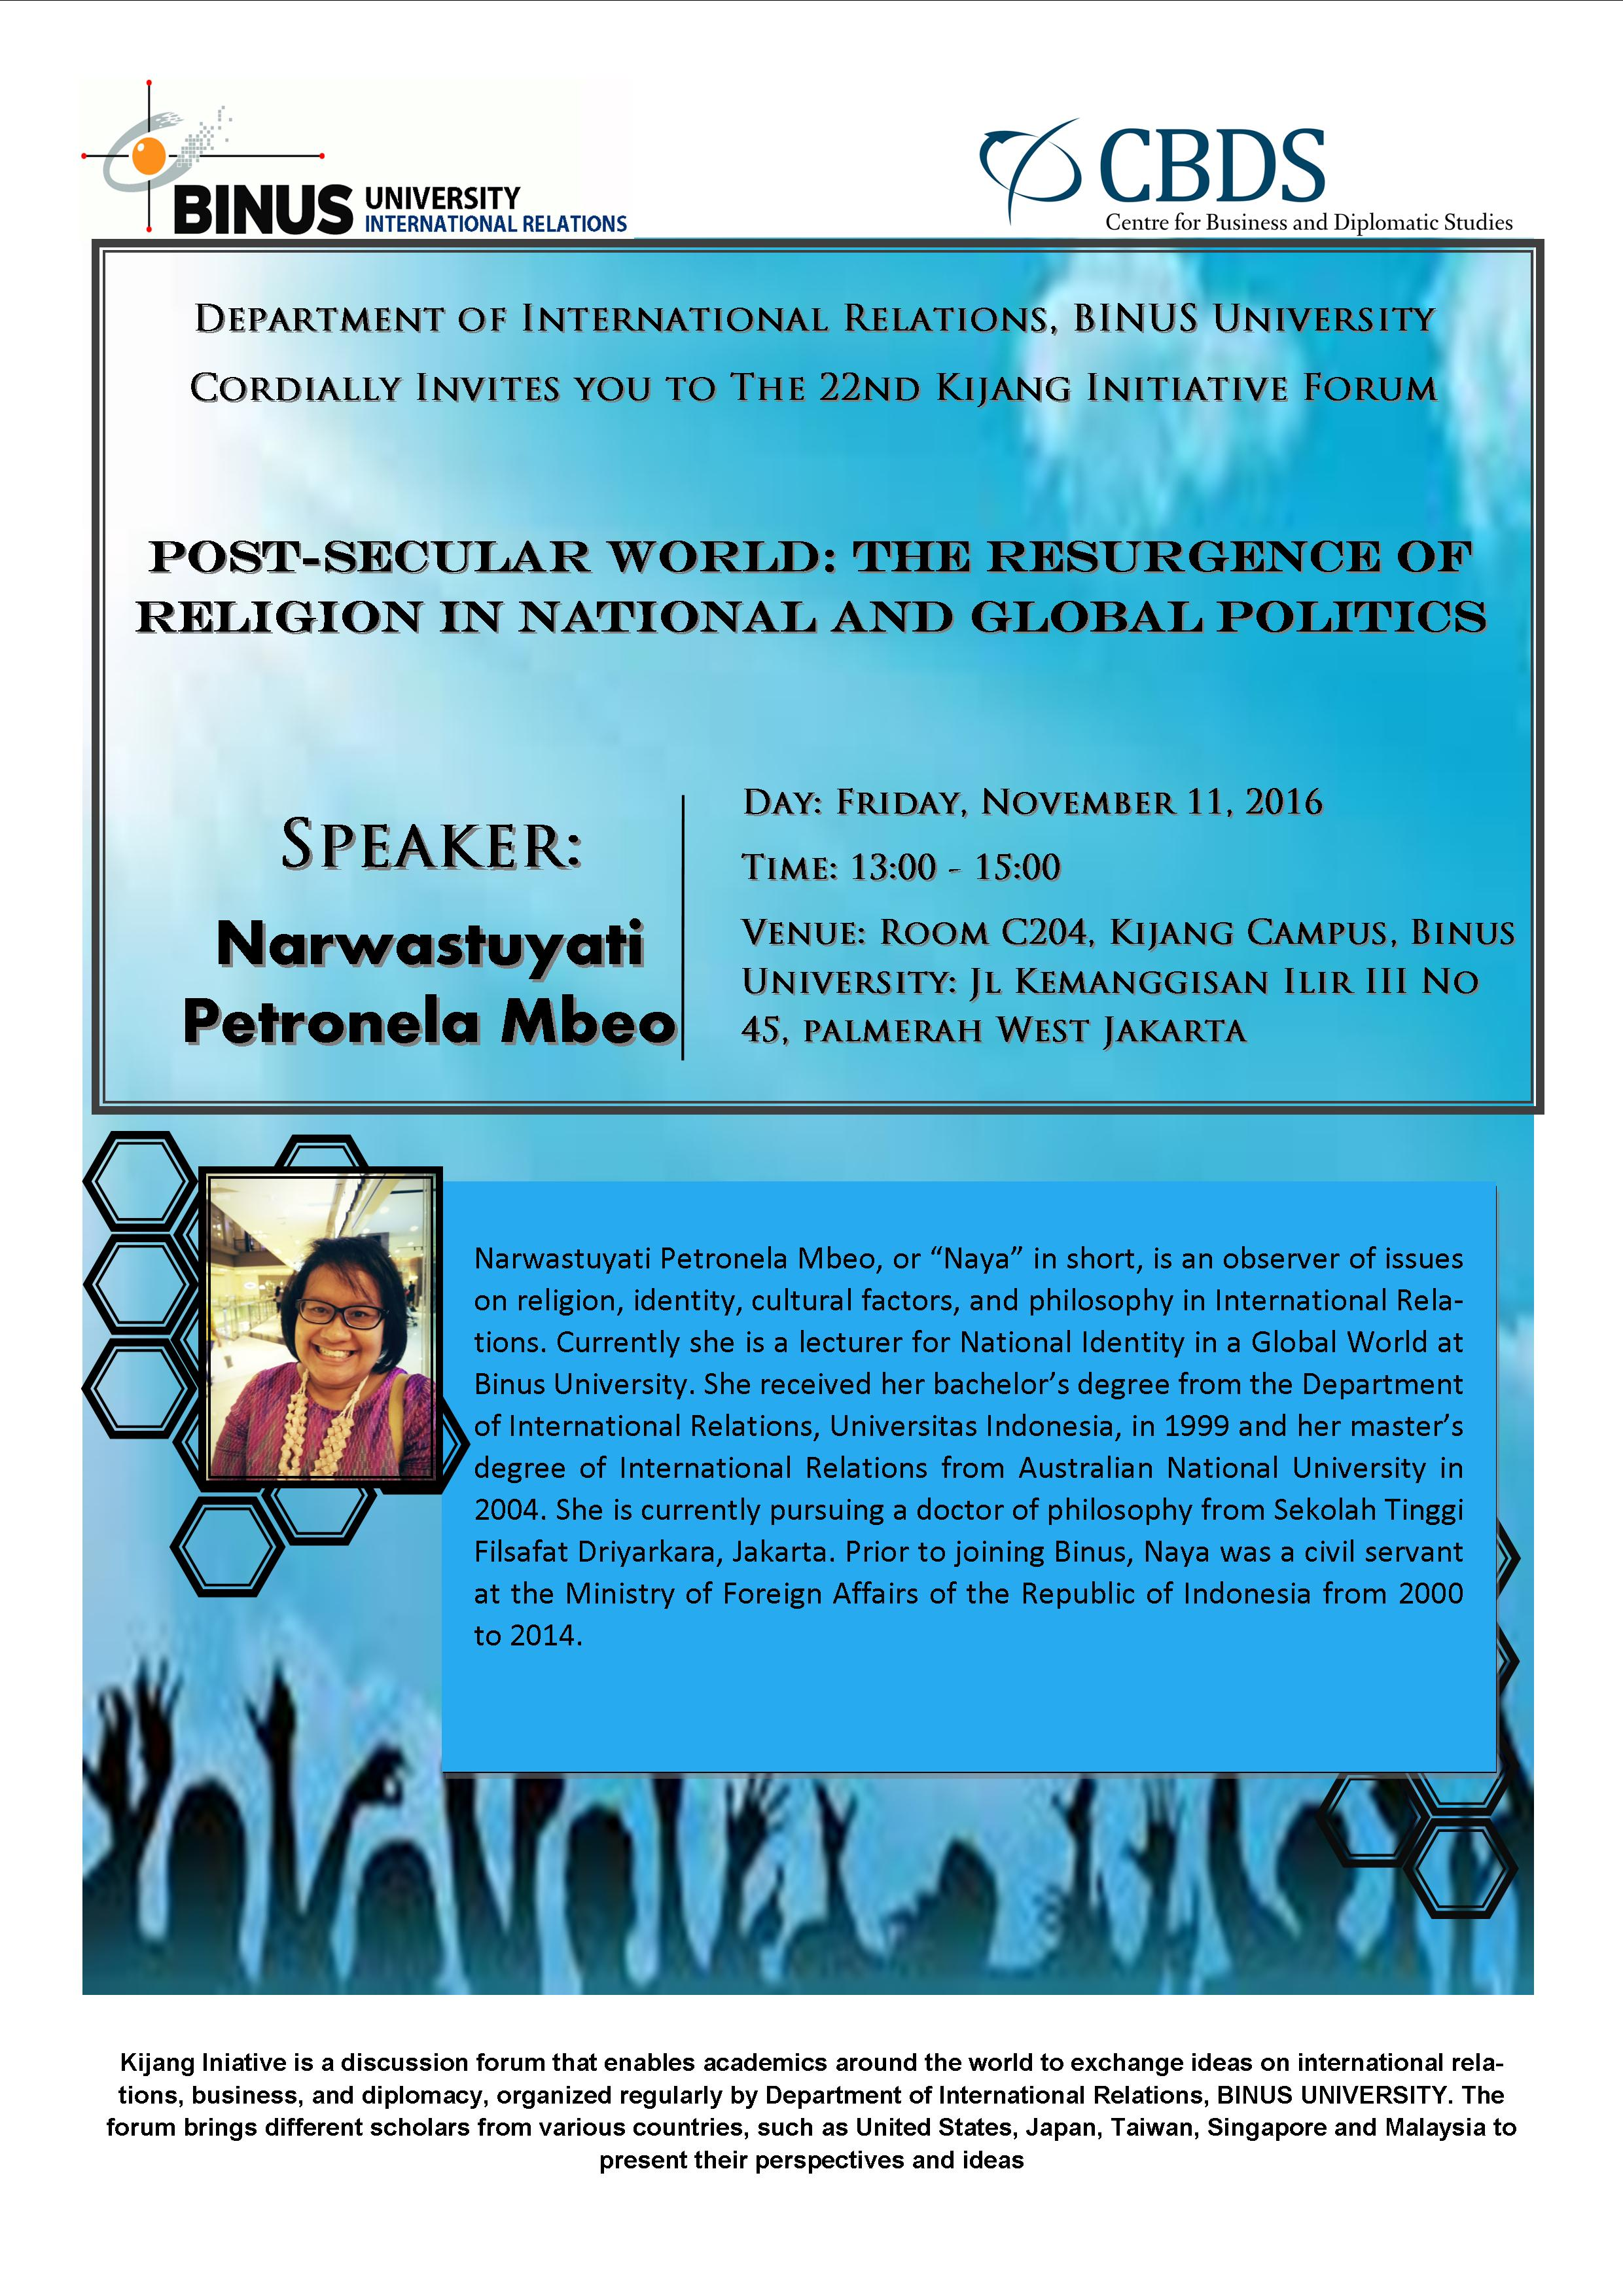 """Invitation to the 22nd Kijang Initiatives Forum """"Post-Secular World: The Resurgence of Religion in National and Global Politics"""""""